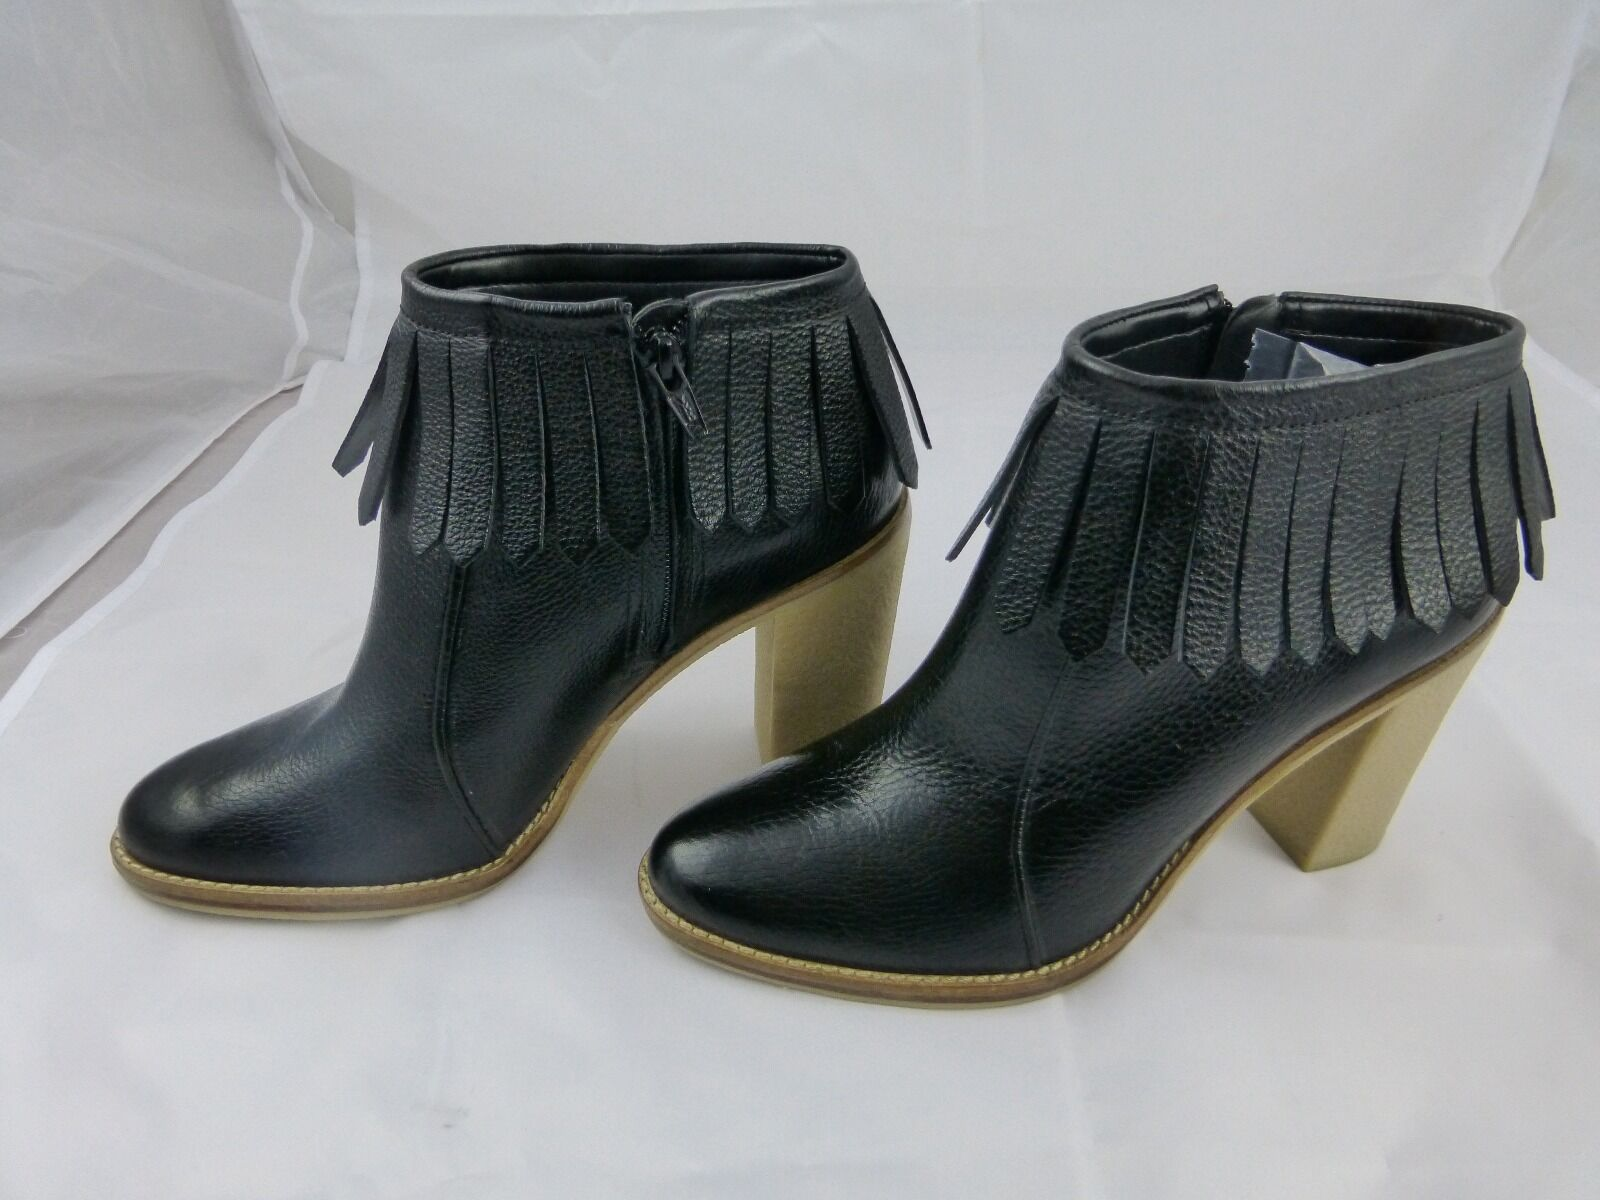 Antonio Melani, noir fashion ankle bottes new 9.5 leather